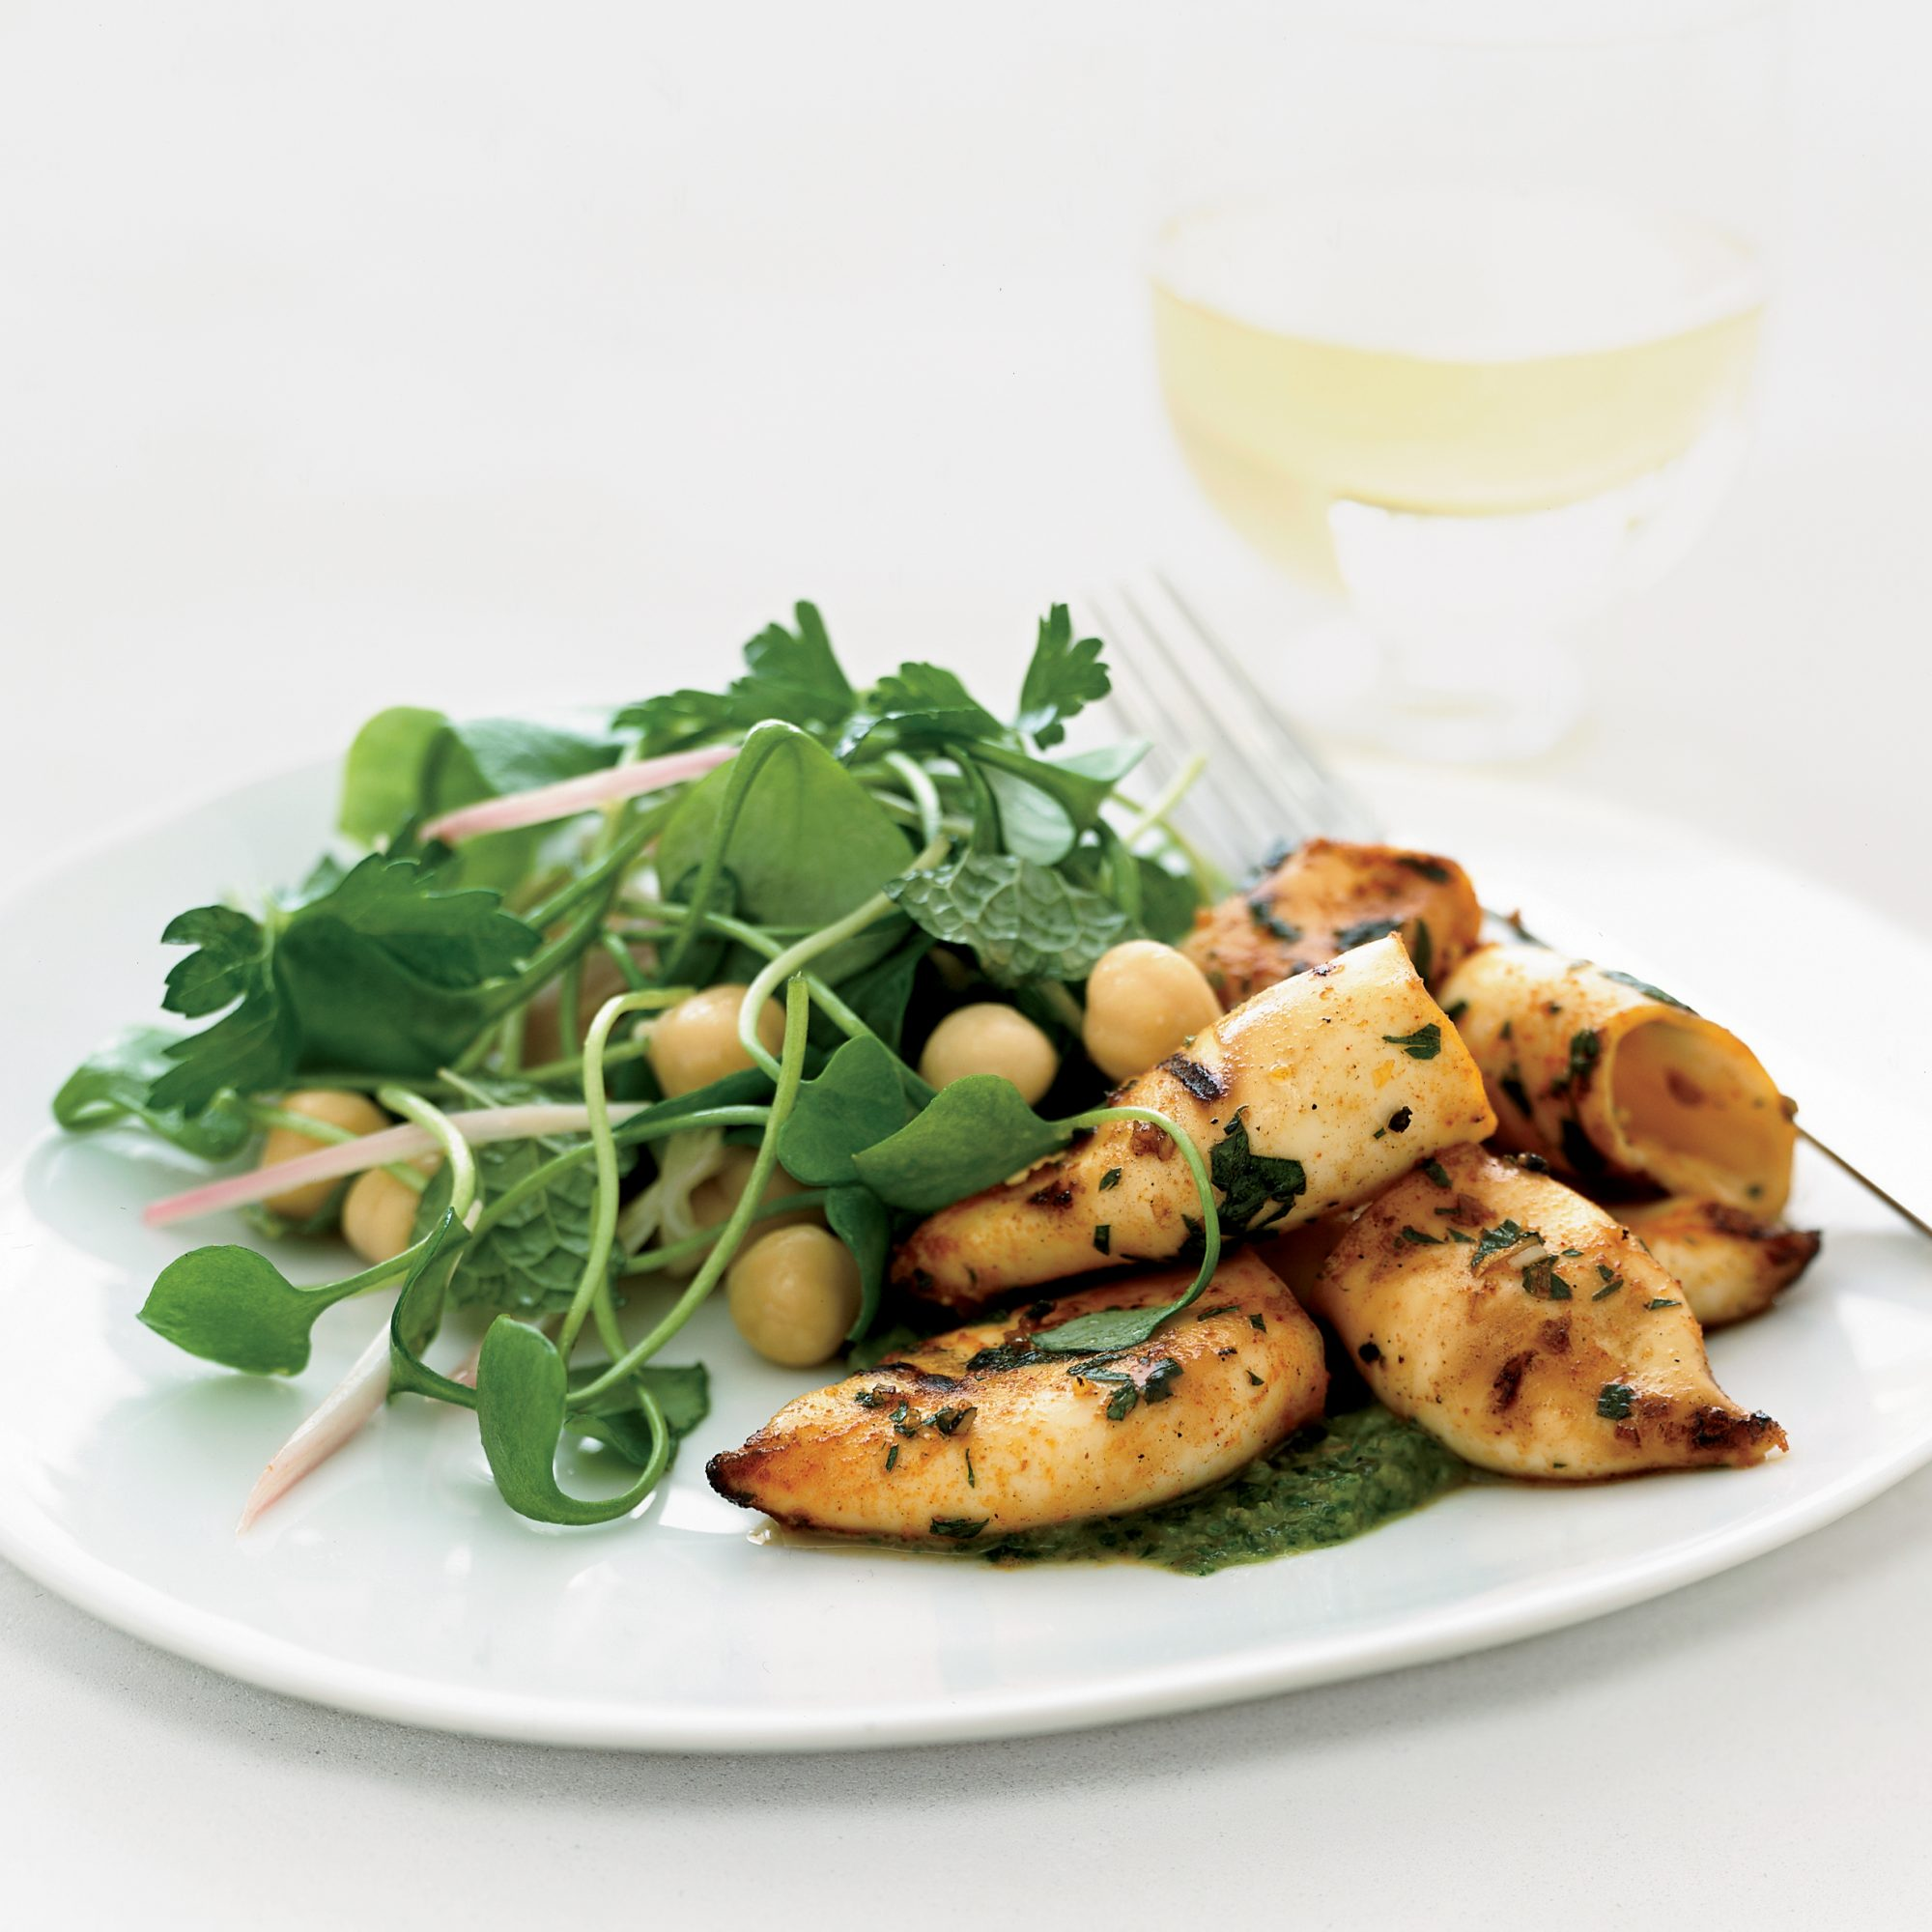 Grilled Squid with Miner's Lettuce Salad and Green Sauce